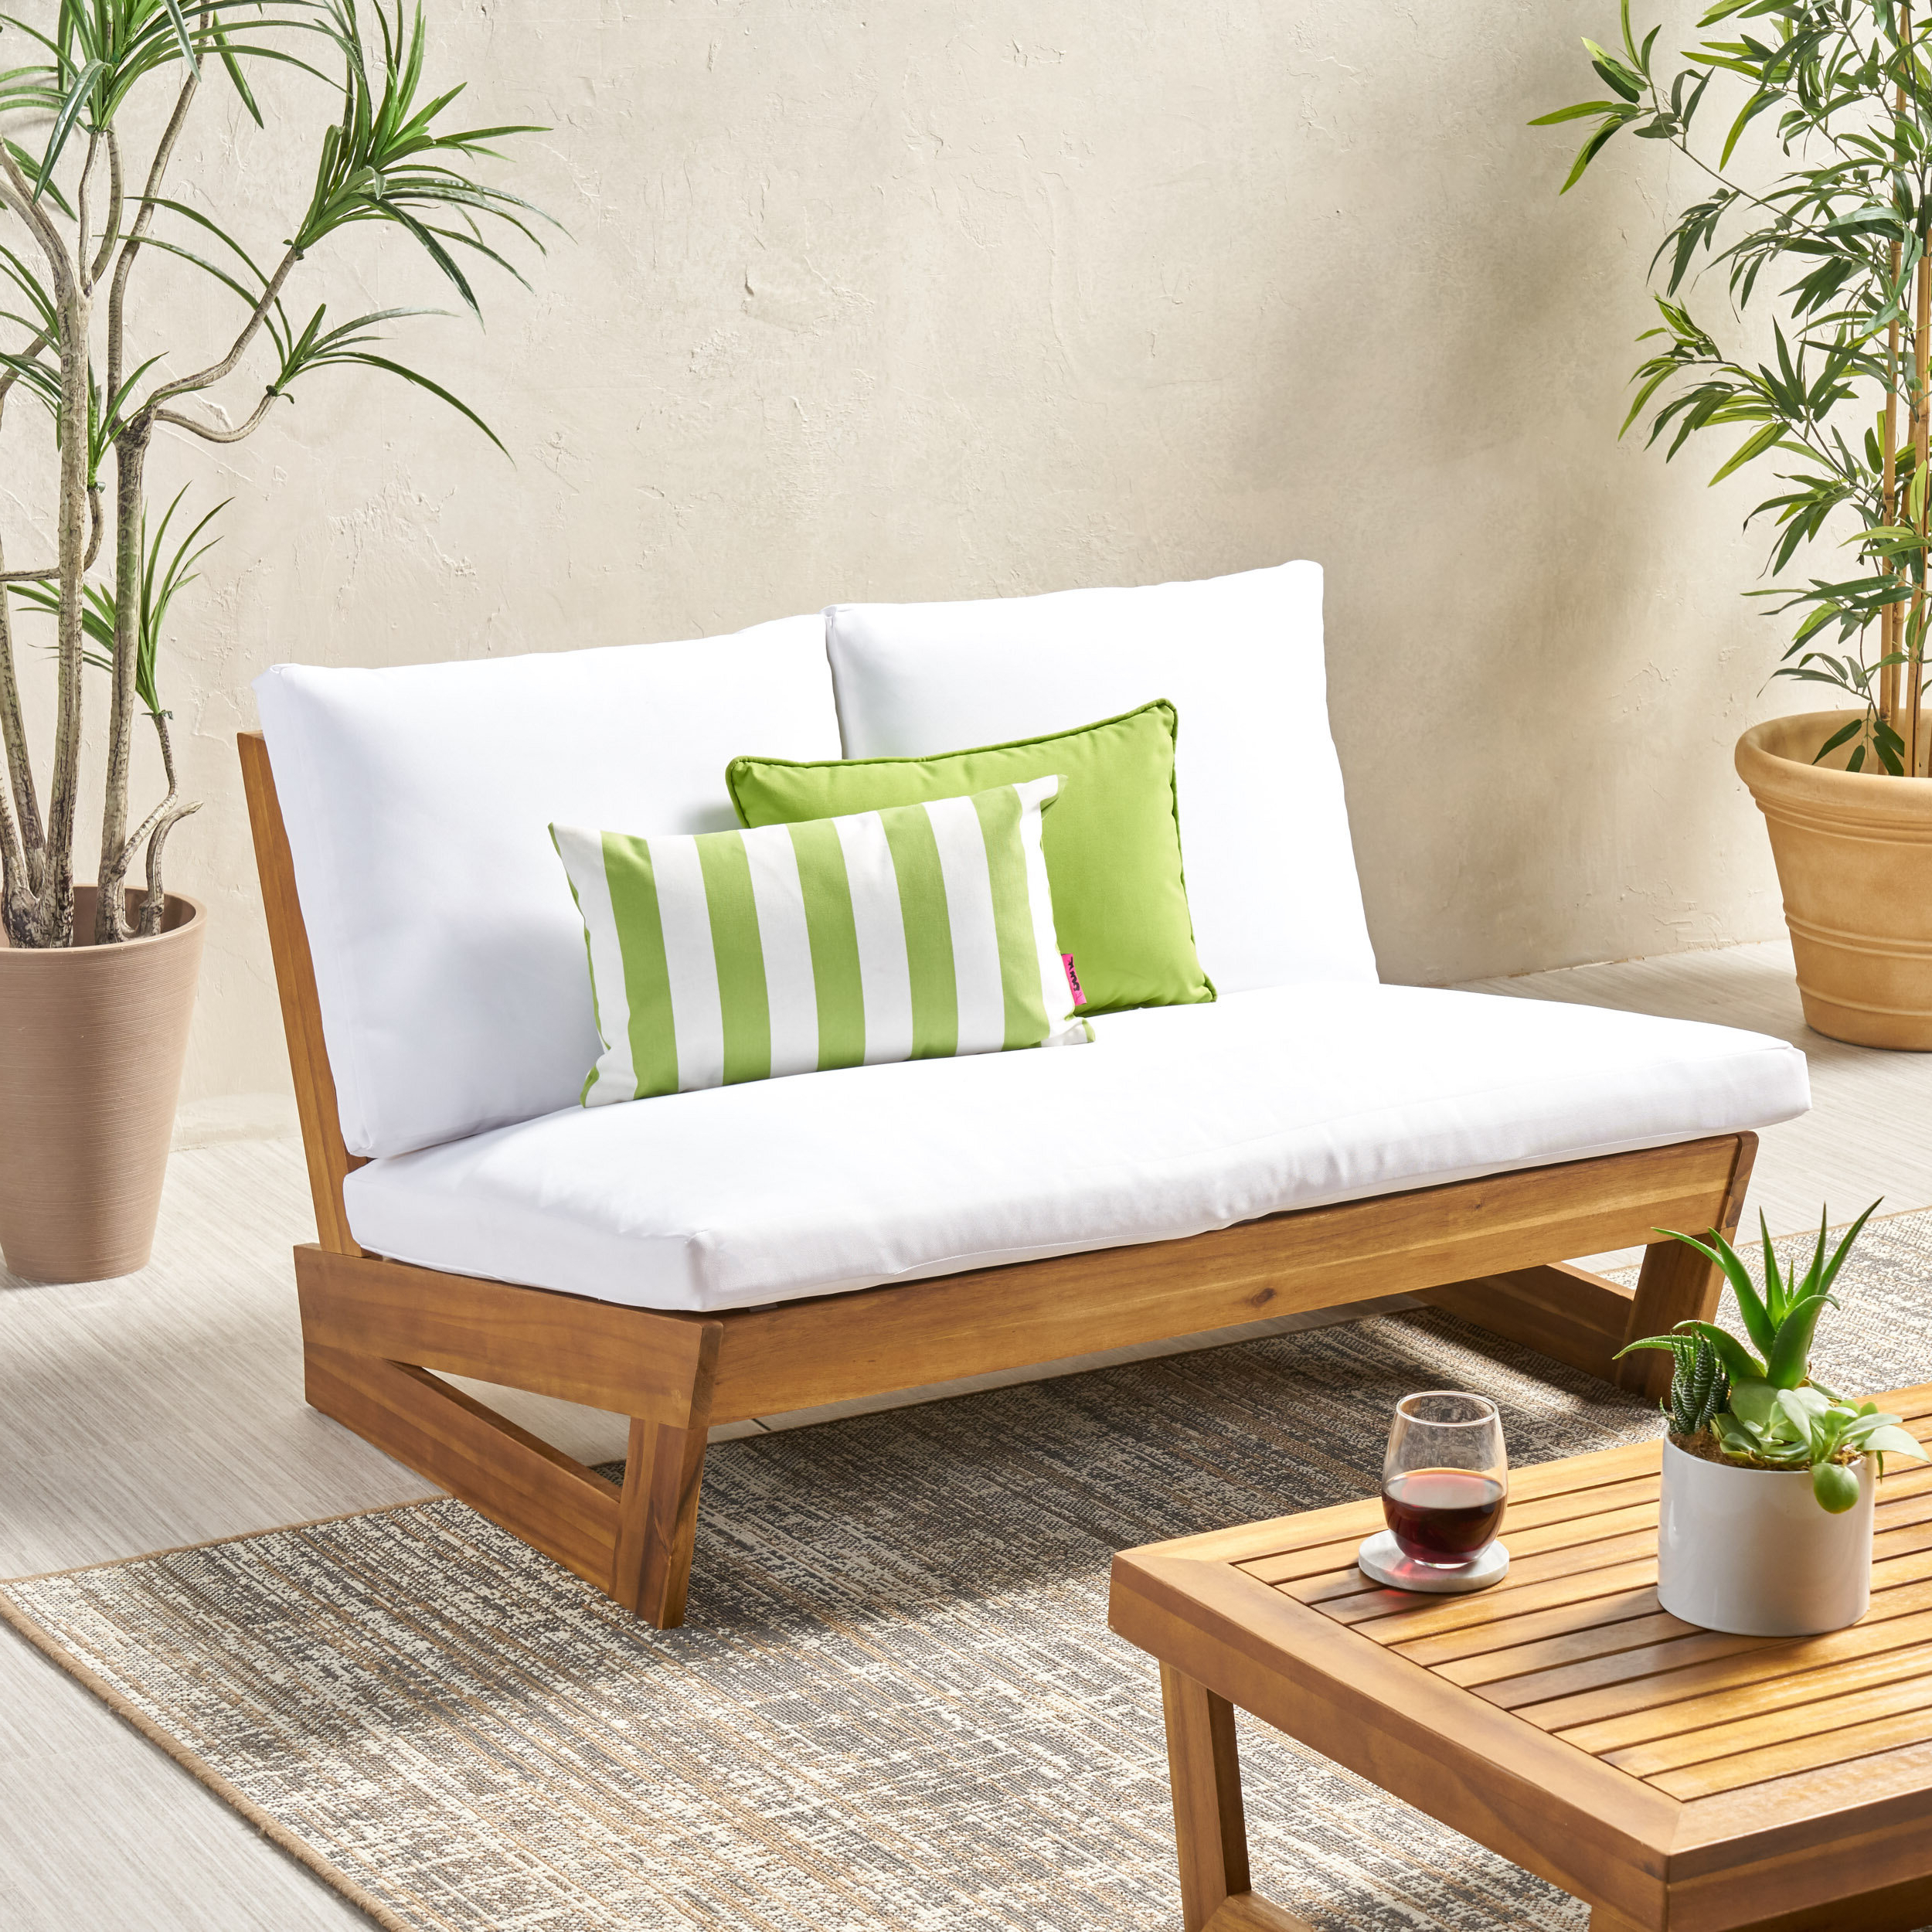 2020 Pekalongan Outdoor Loveseat With Cushions With Regard To Bullock Outdoor Wooden Loveseats With Cushions (View 2 of 20)